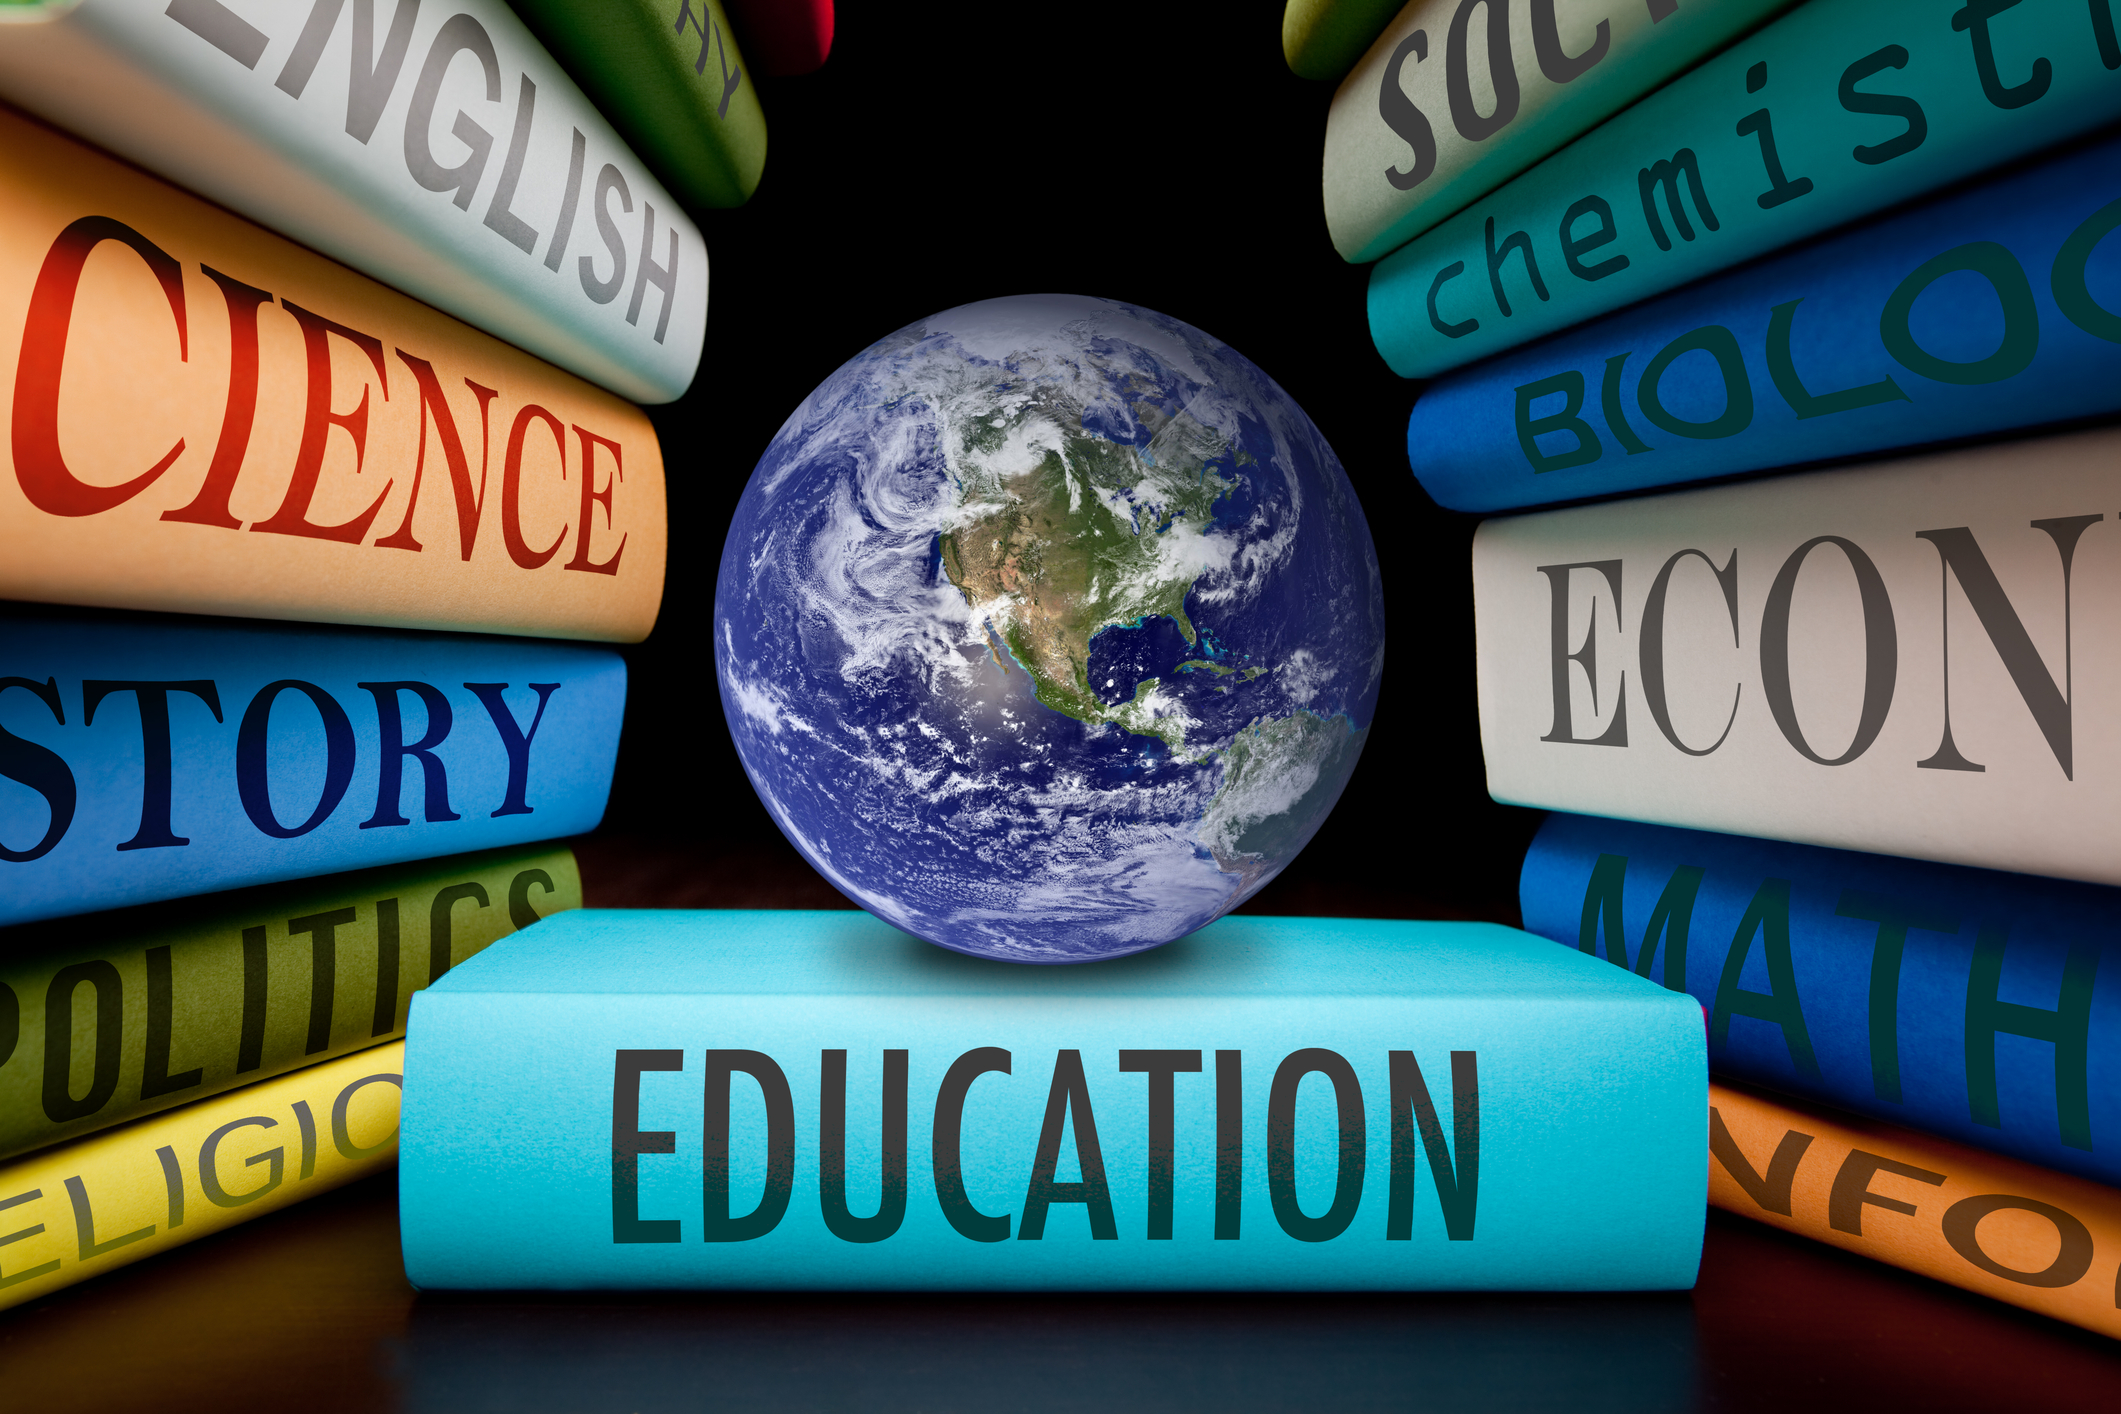 http://www.dreamstime.com/stock-images-education-school-books-study-to-learn-image19555104